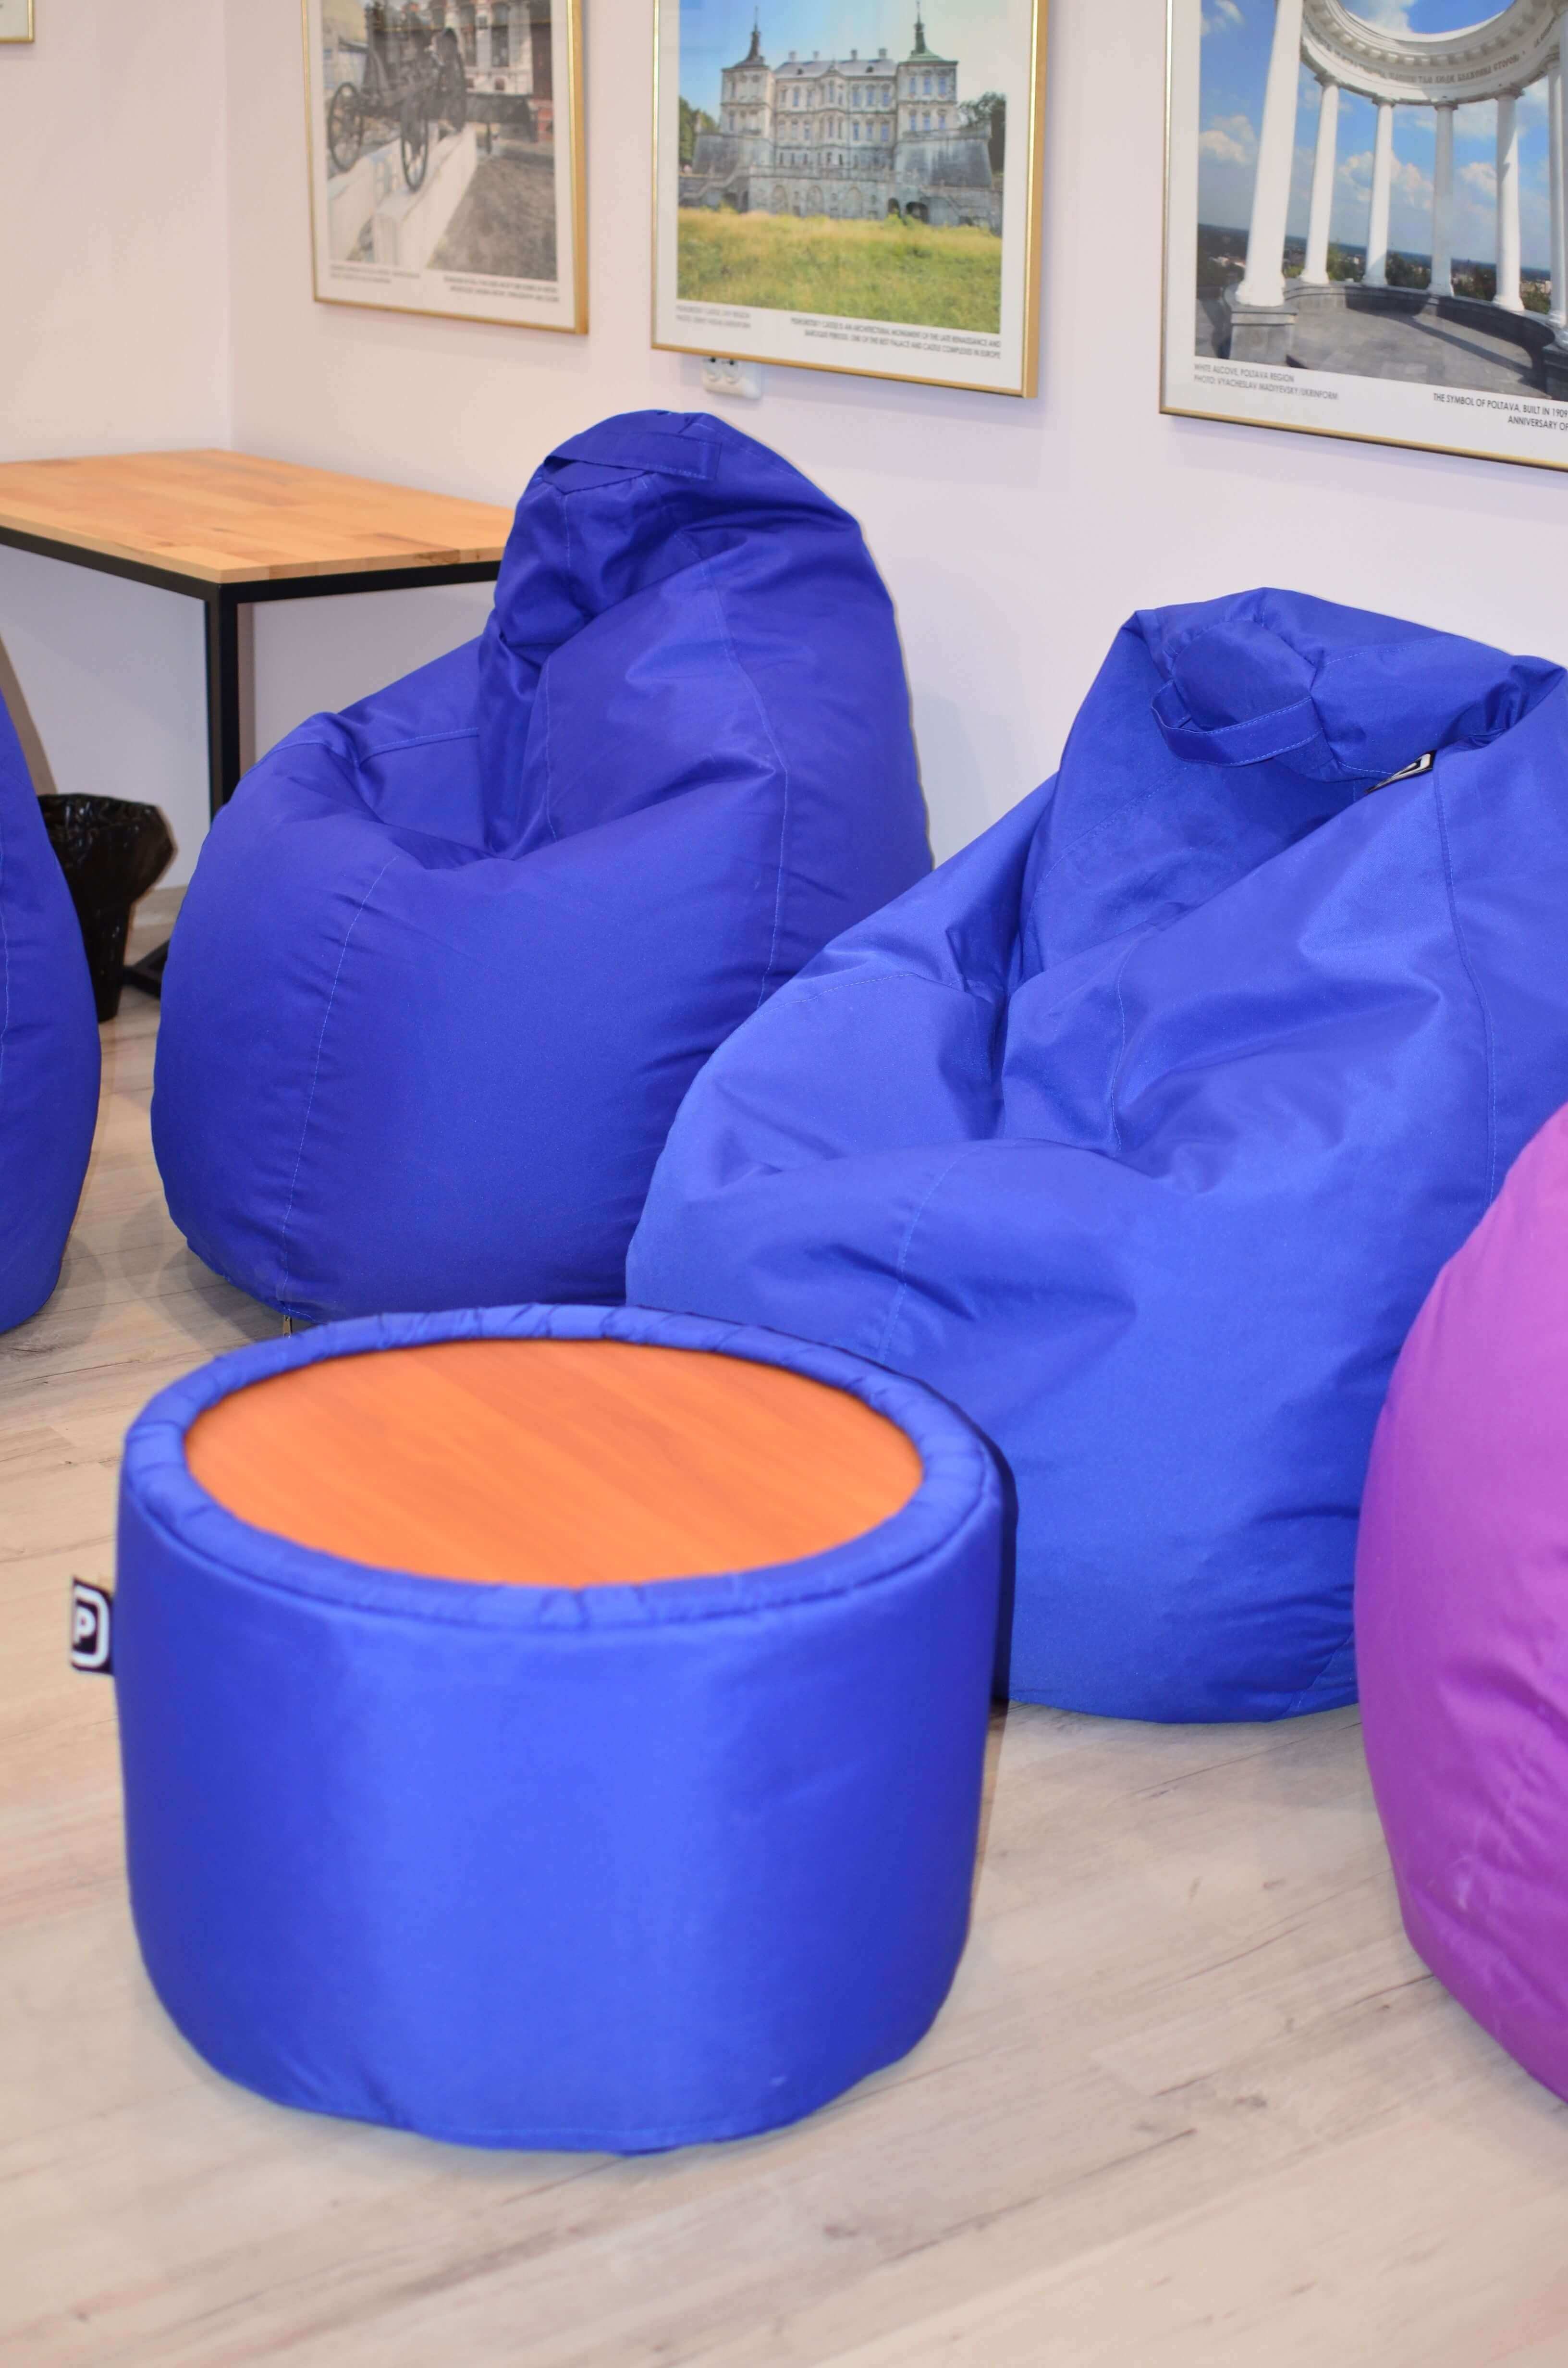 Similarly In Dubai The Weather Is Rough And Life Here Also Very Busy So That Case Bean Bags Actually A Nice Tool To Get Over Your